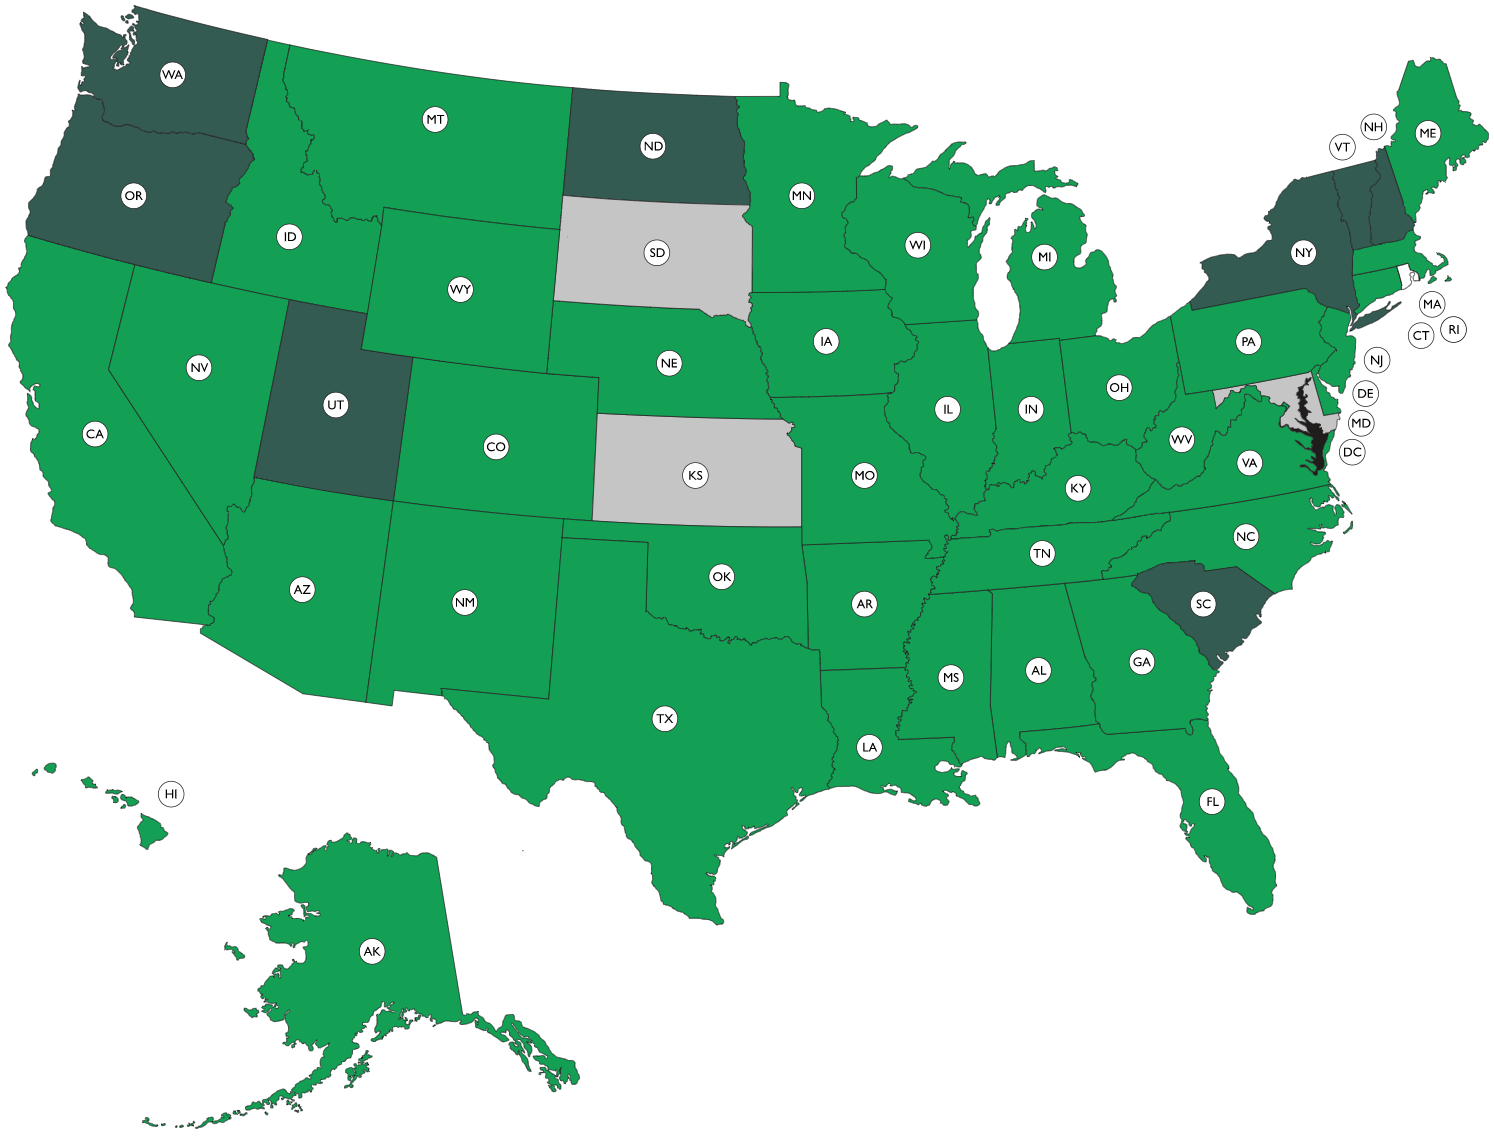 Map of the United States showing the sources of information on Medicare waivers.